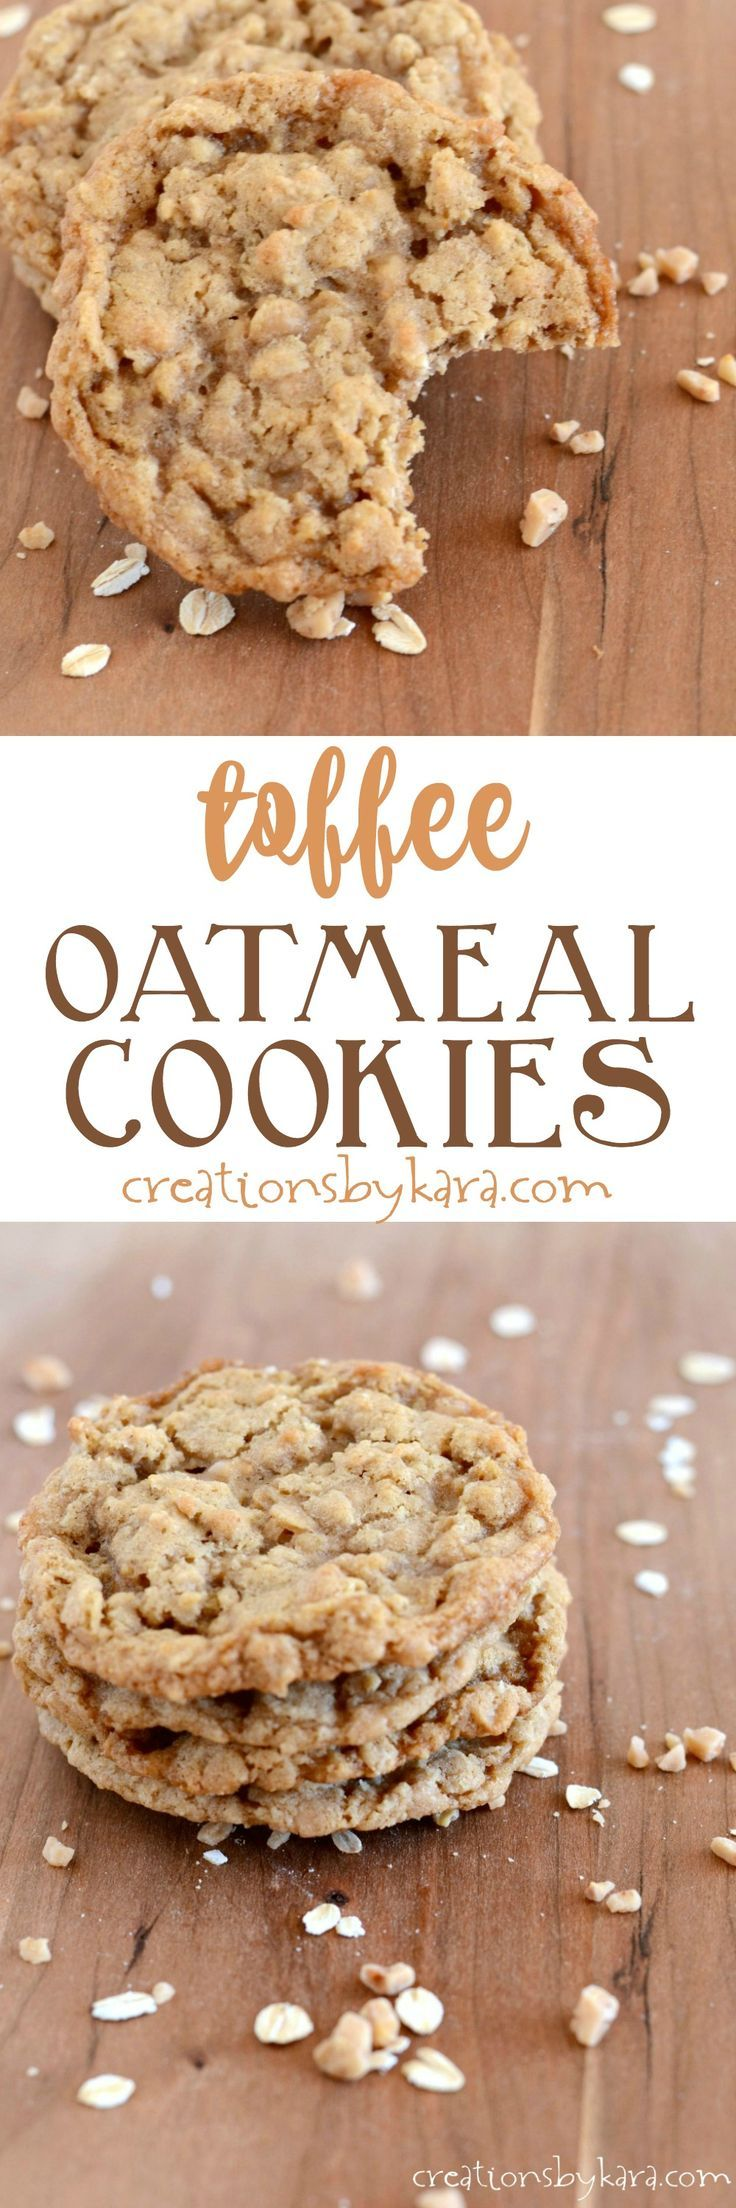 If you love toffee, this Oatmeal Toffee Cookie recipe is for you! They are crisp on the edges, chewy in the middle. A perfect oatmeal cookie.